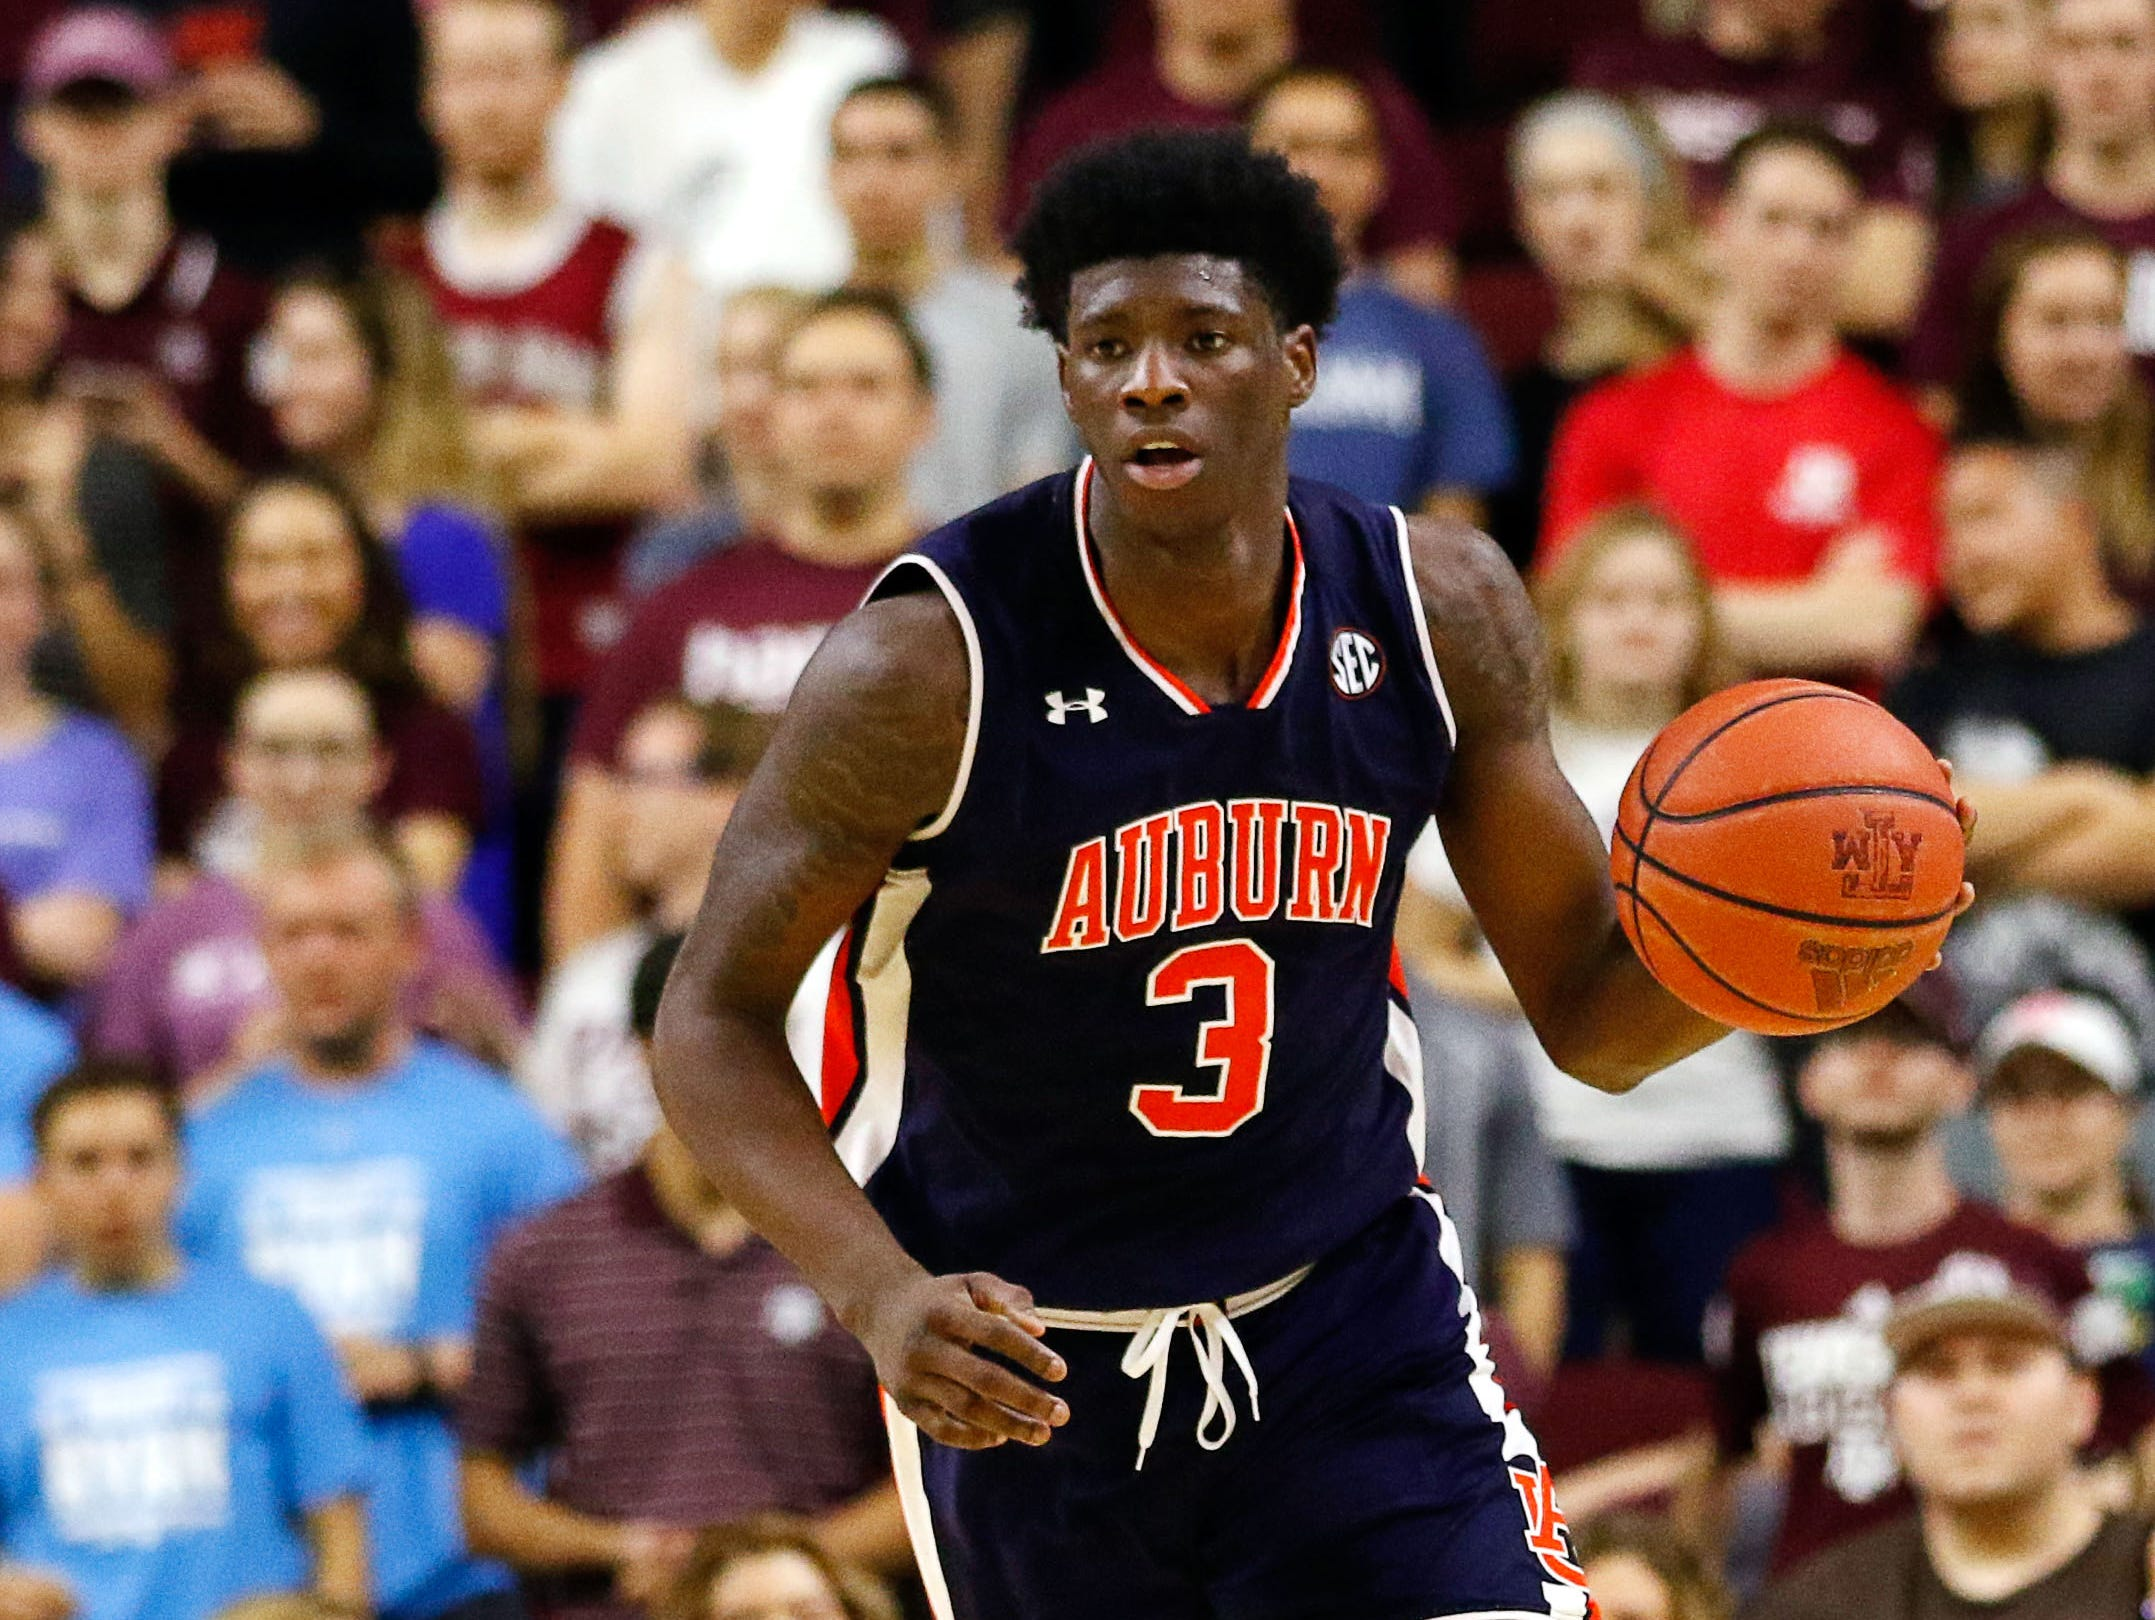 Feb 18, 2017; College Station, TX, USA; Auburn Tigers forward Danjel Purifoy (3) dribbles up court against the Texas A&M Aggies during a game at Reed Arena. Texas A&M won 81-62. Mandatory Credit: Ray Carlin-USA TODAY Sports